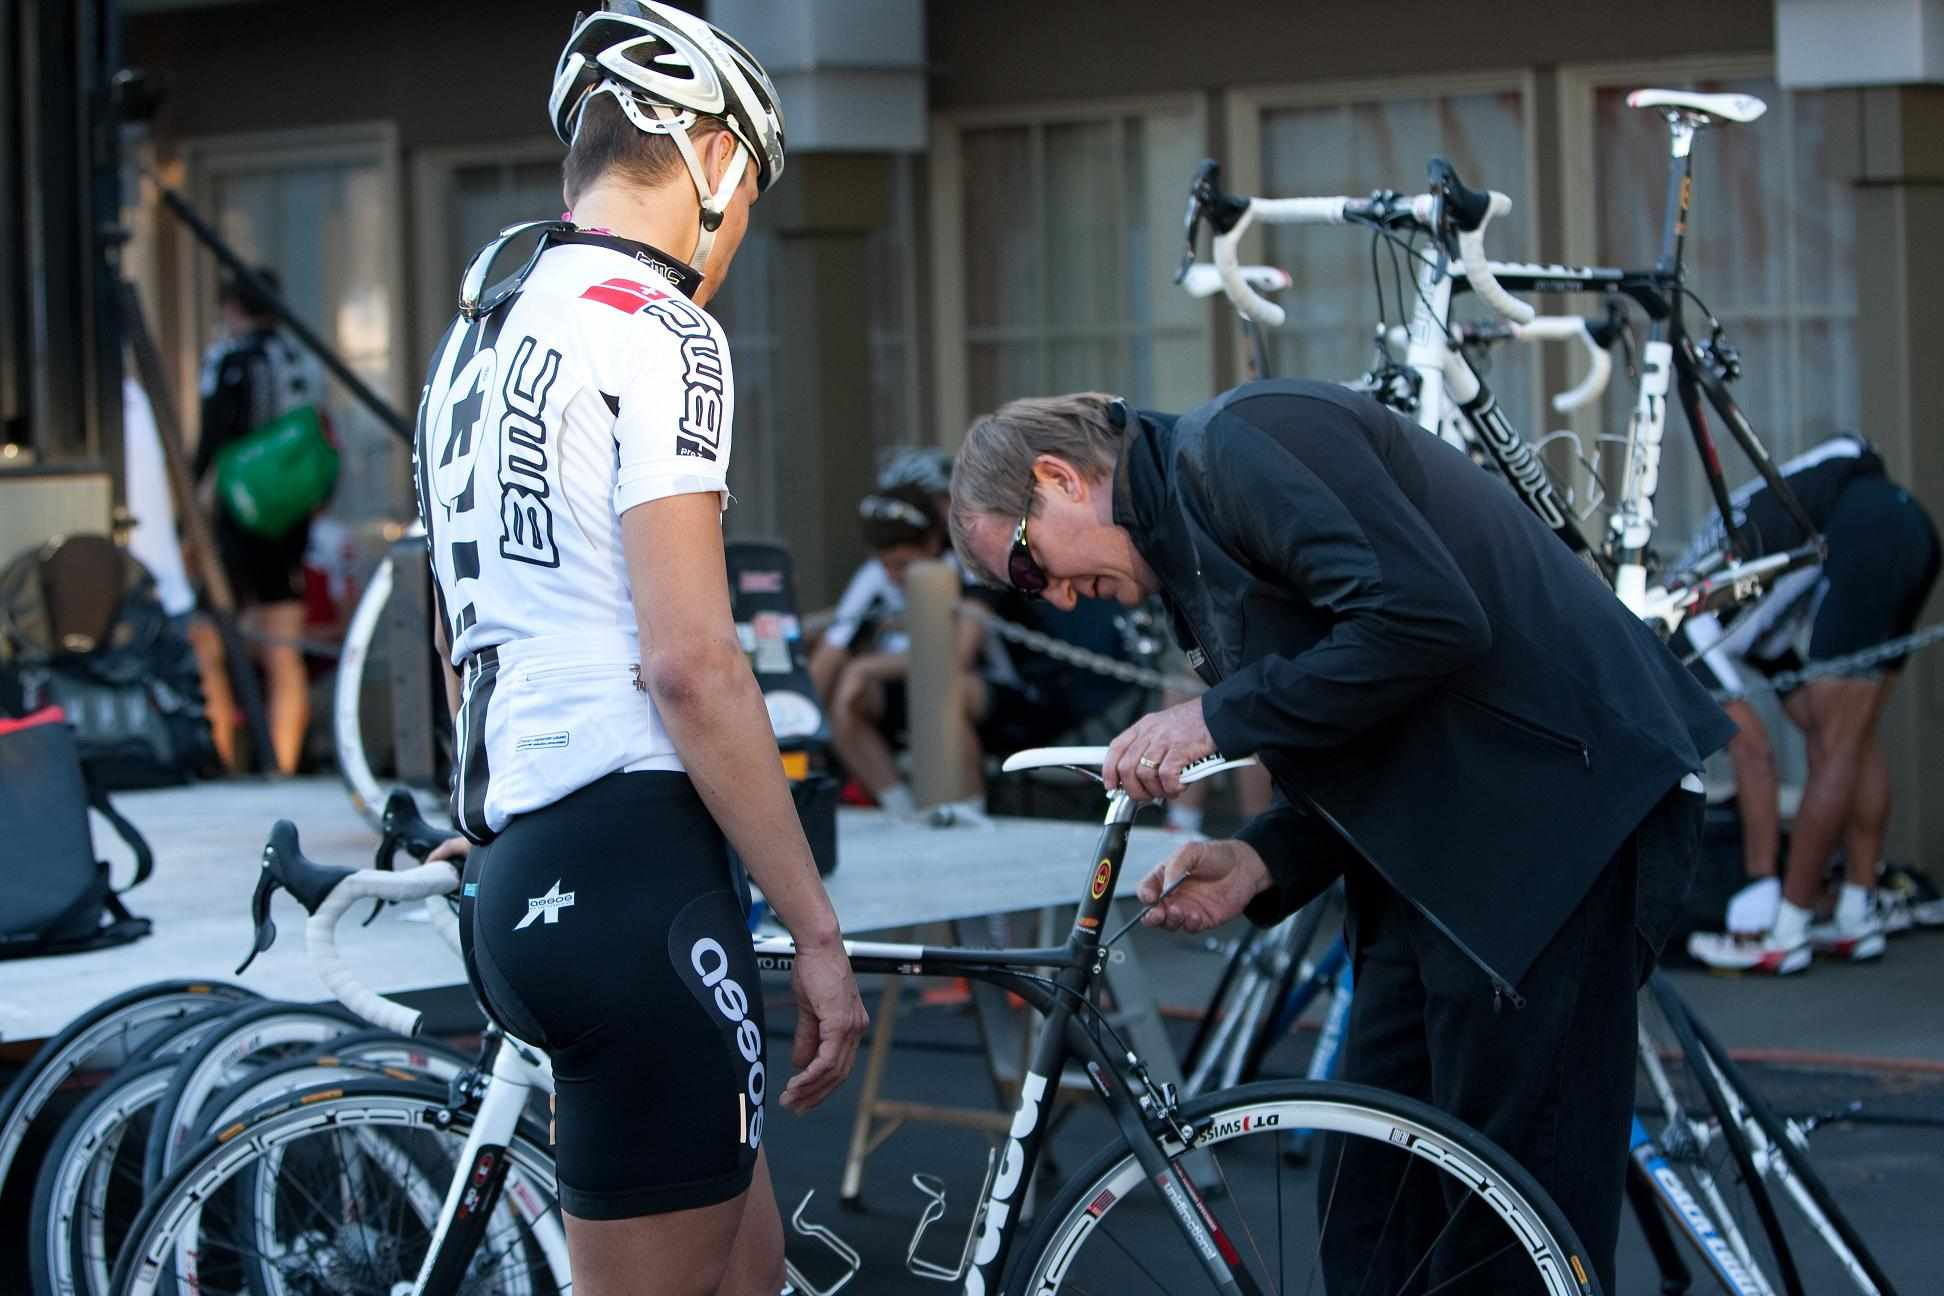 BMC mechanics work closely with their riders.